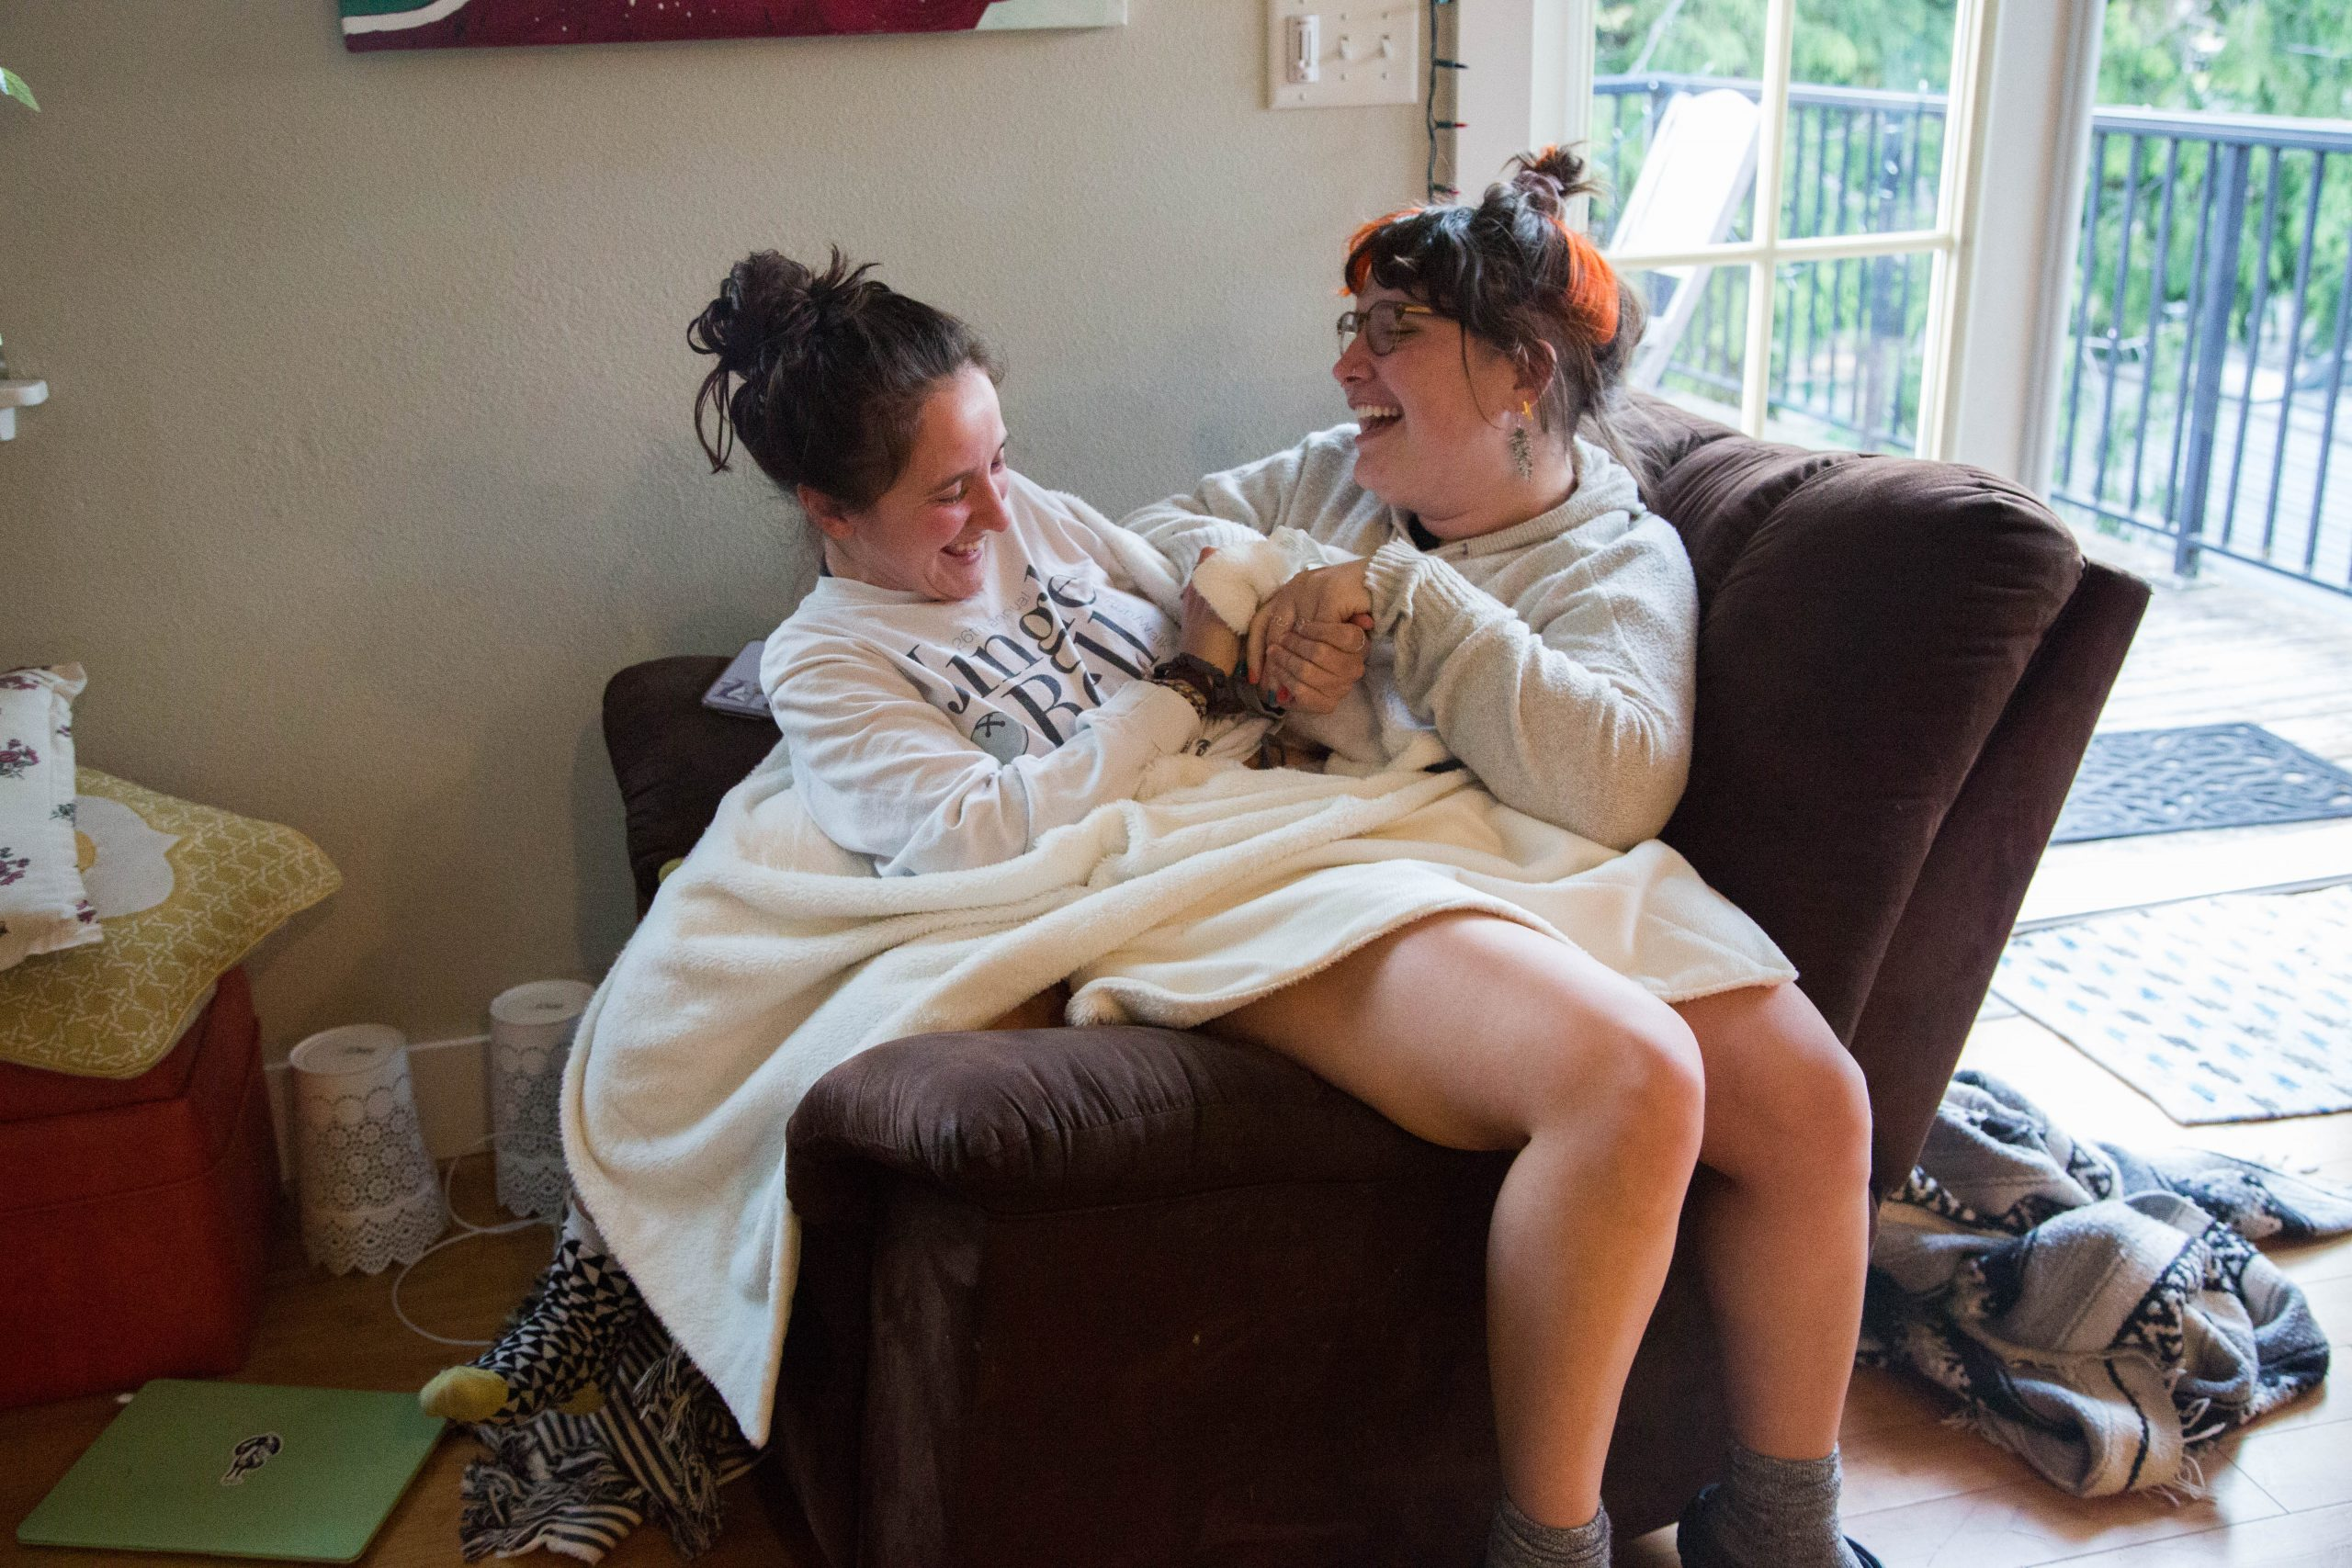 Jordan Coady and Chloe Fleuret laugh while sitting together on a recliner at home. The time at home has strengthened their relationship, both as roommates and friends.